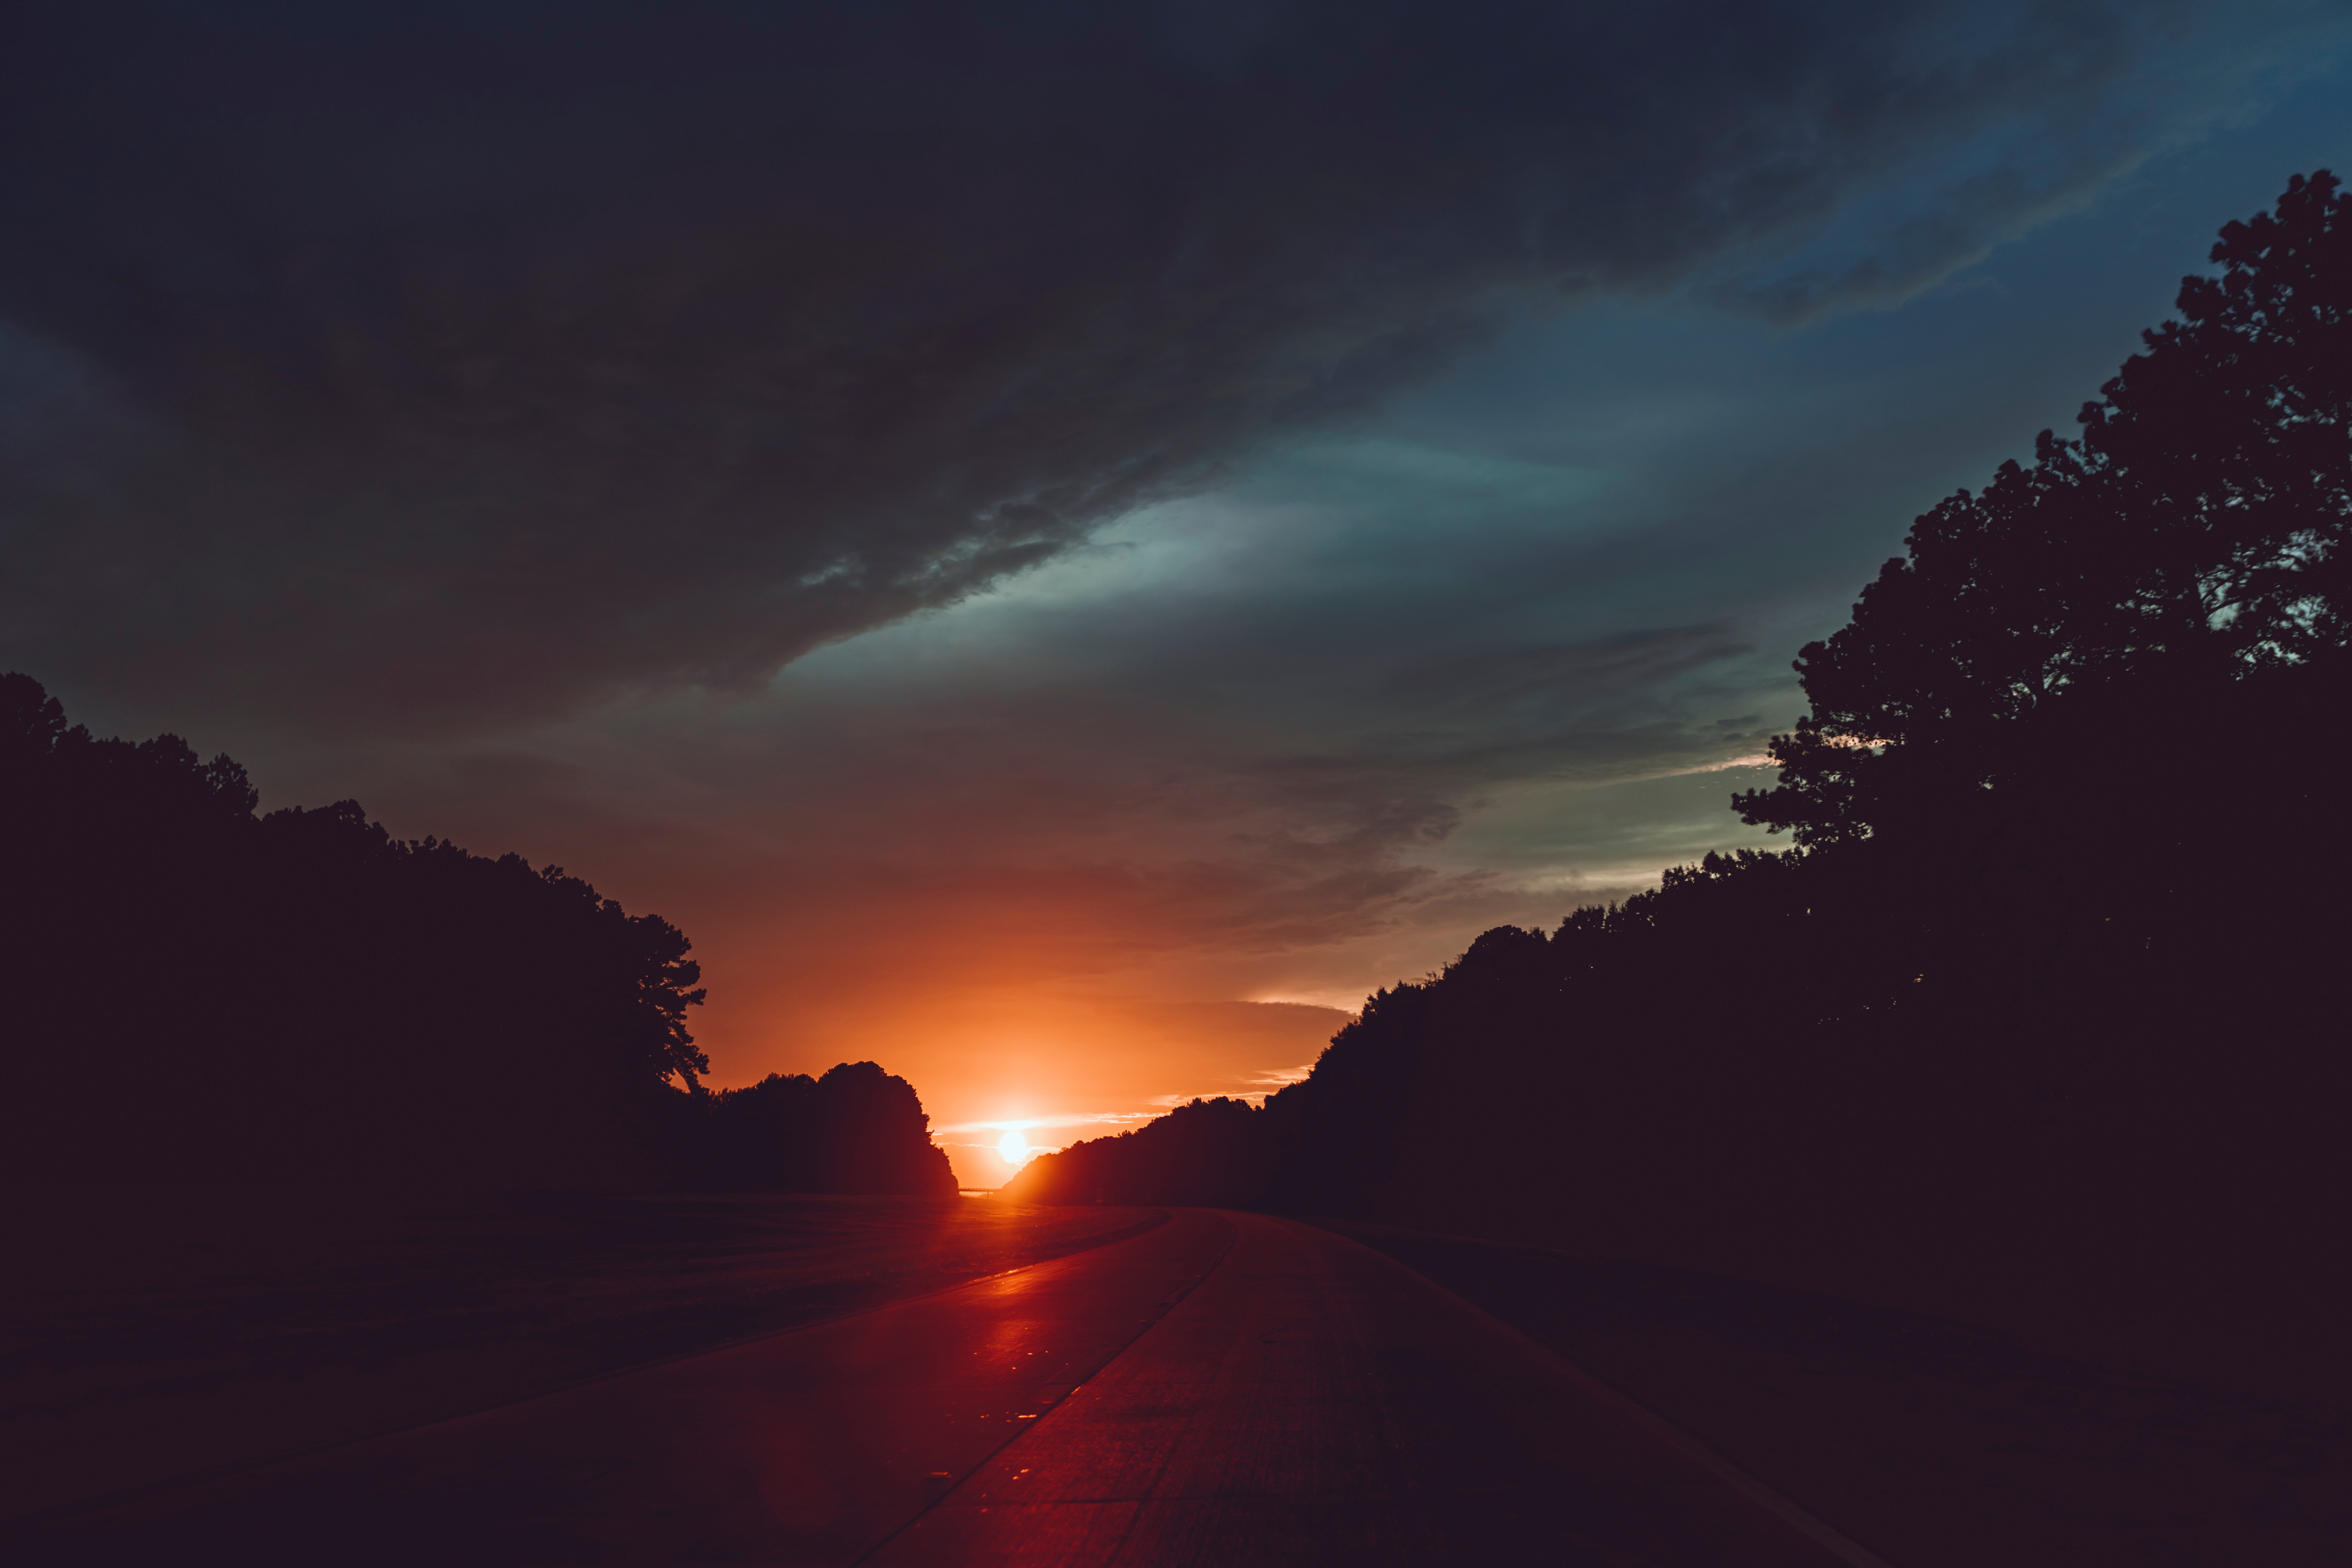 Highway sunset 5k hd nature 4k wallpapers images - Wallpapers 1280x800 nature ...